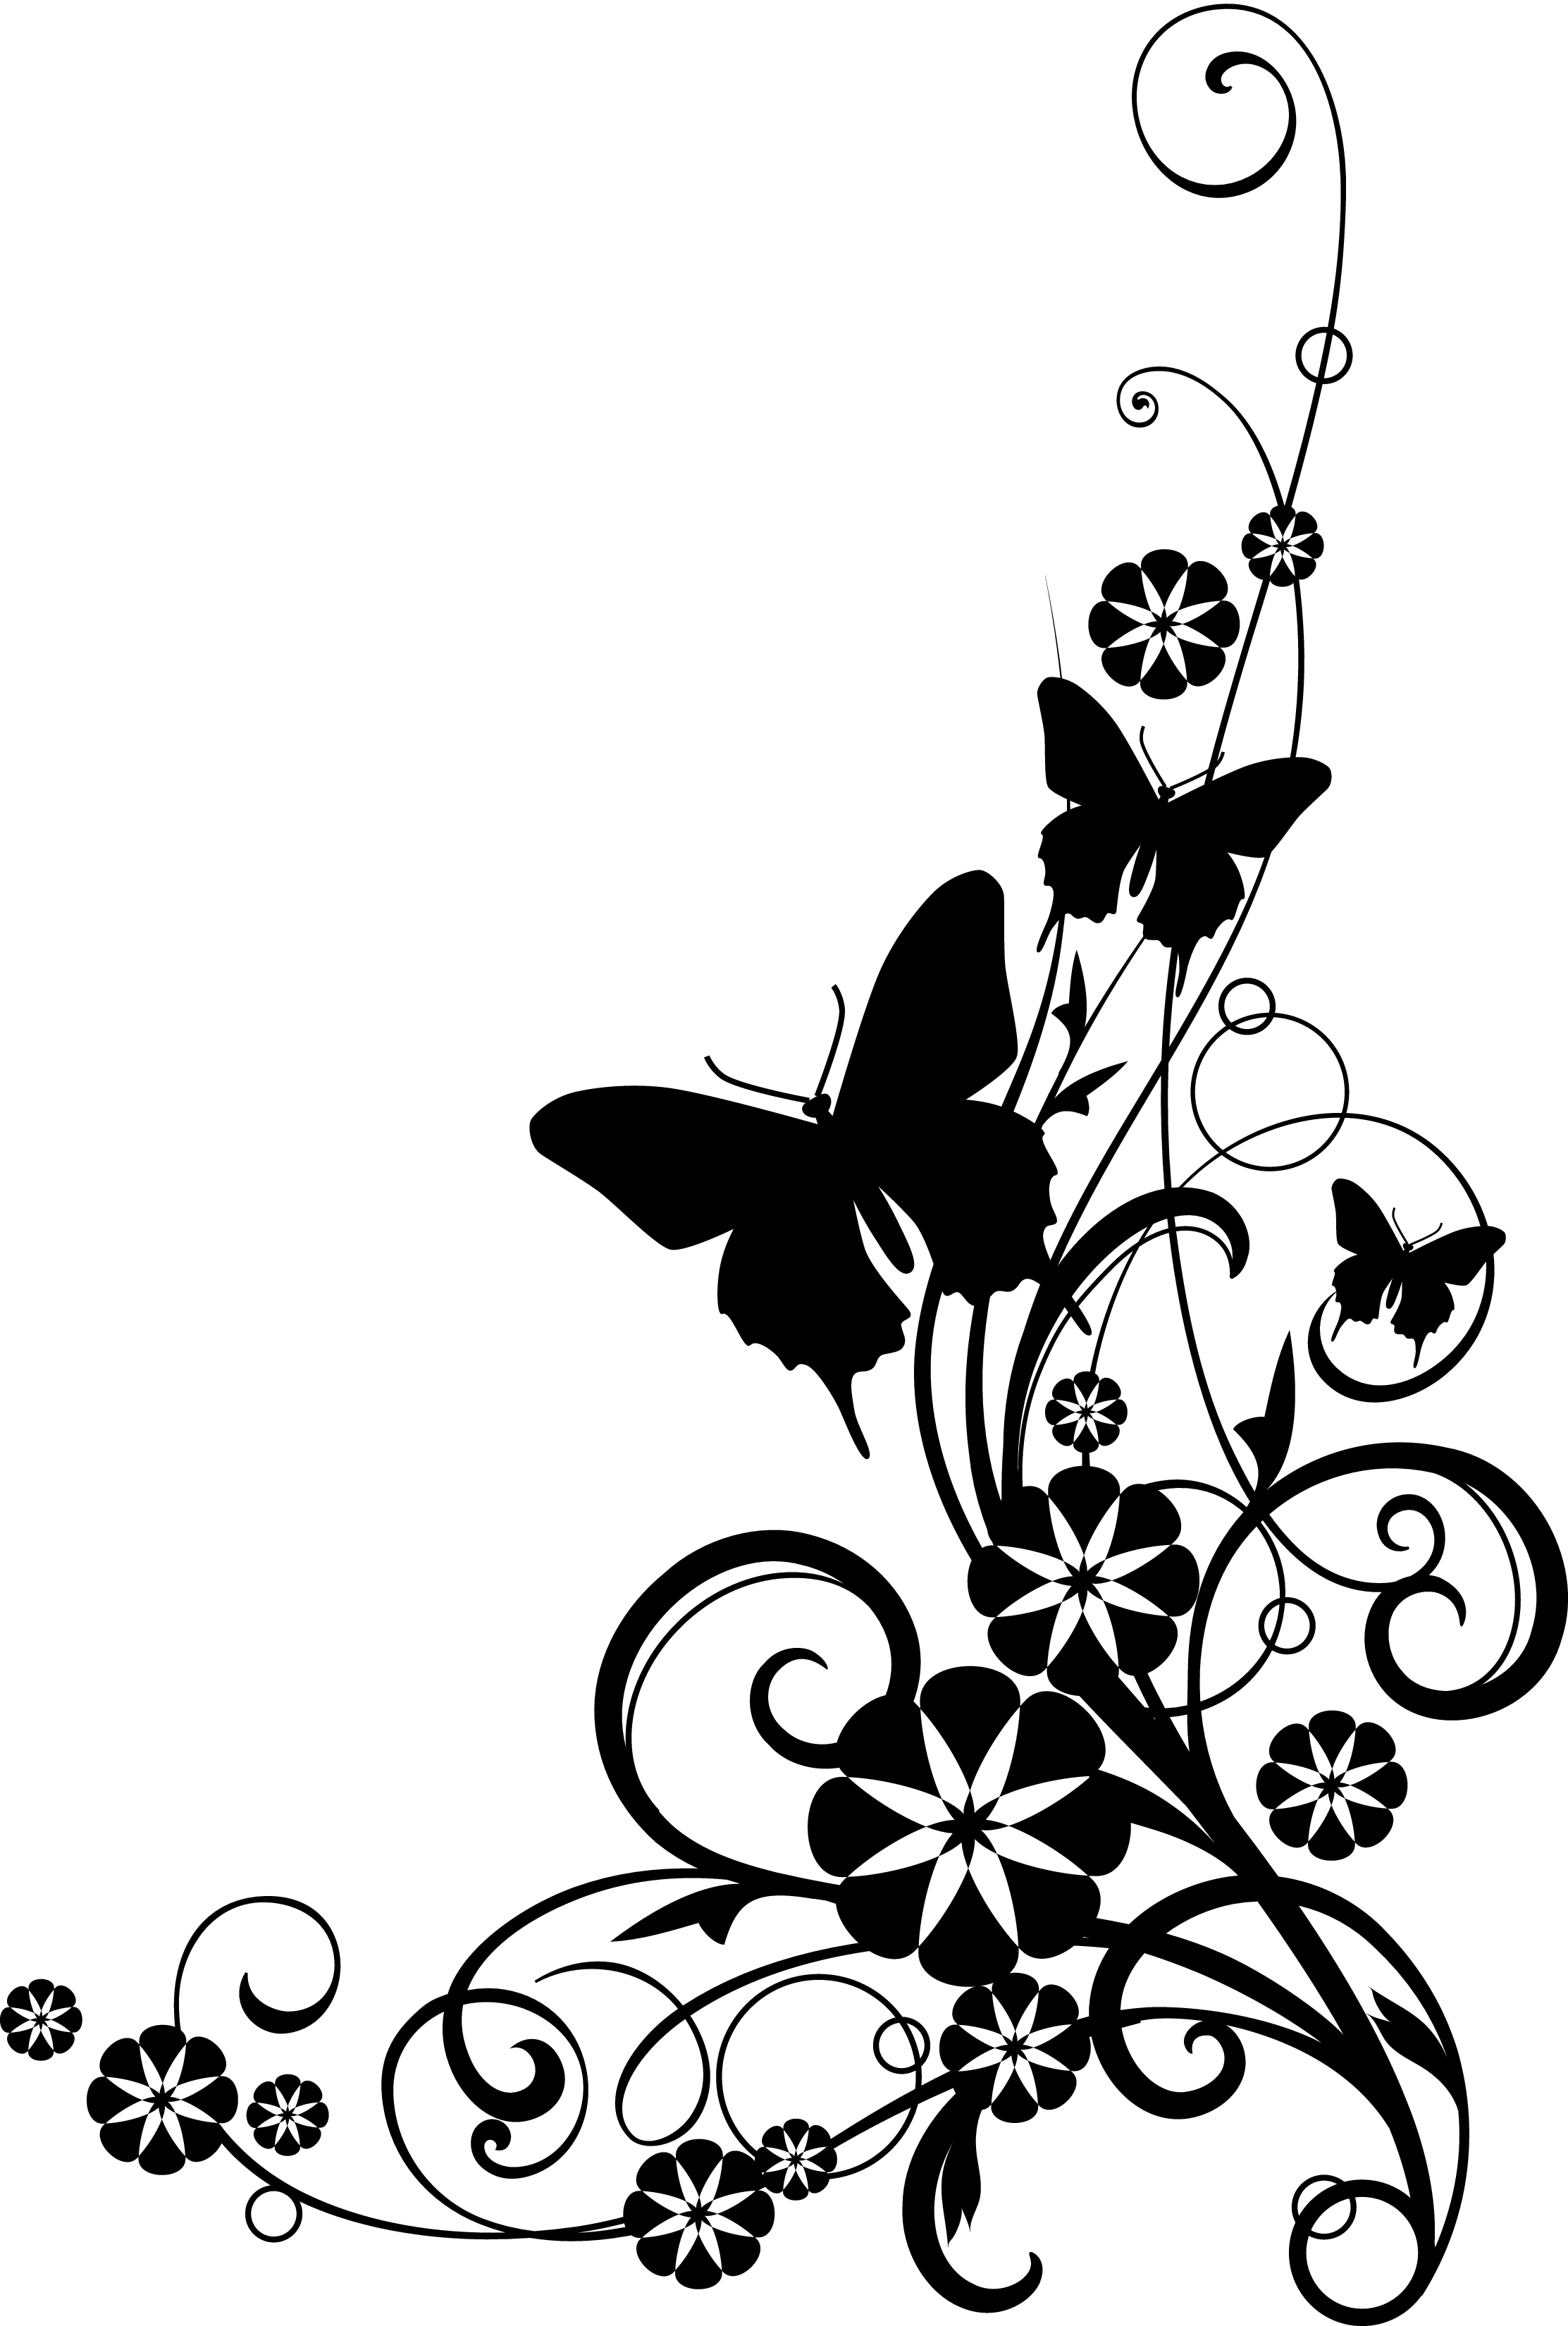 Clip Art Flowers Black And White Border